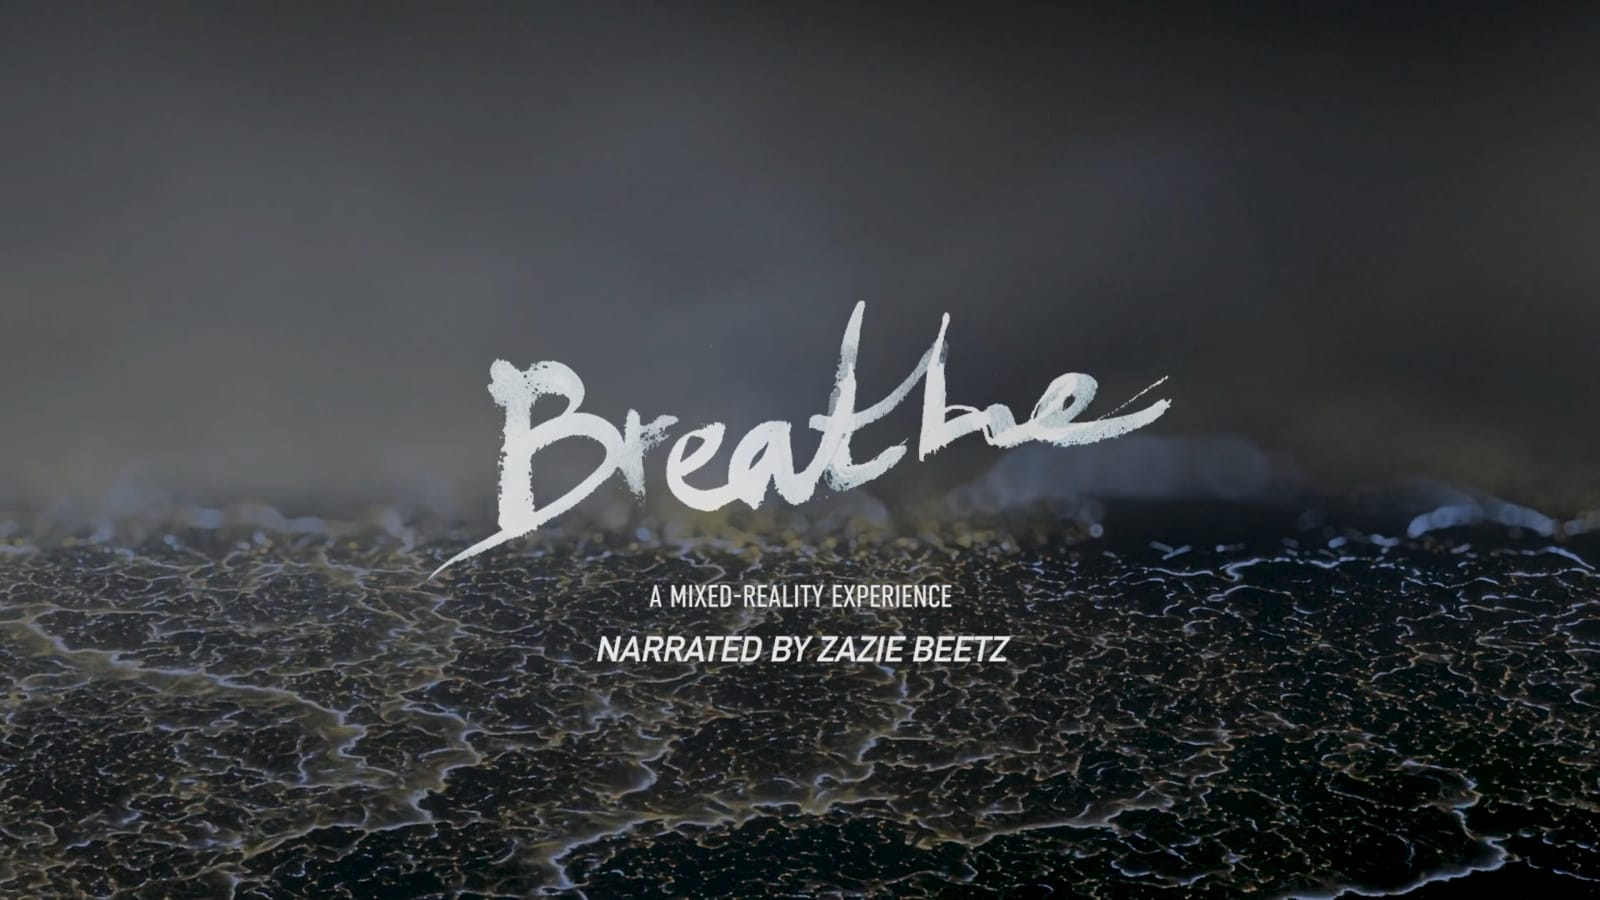 A breath-sensing AR project helps visualize your impact on the world